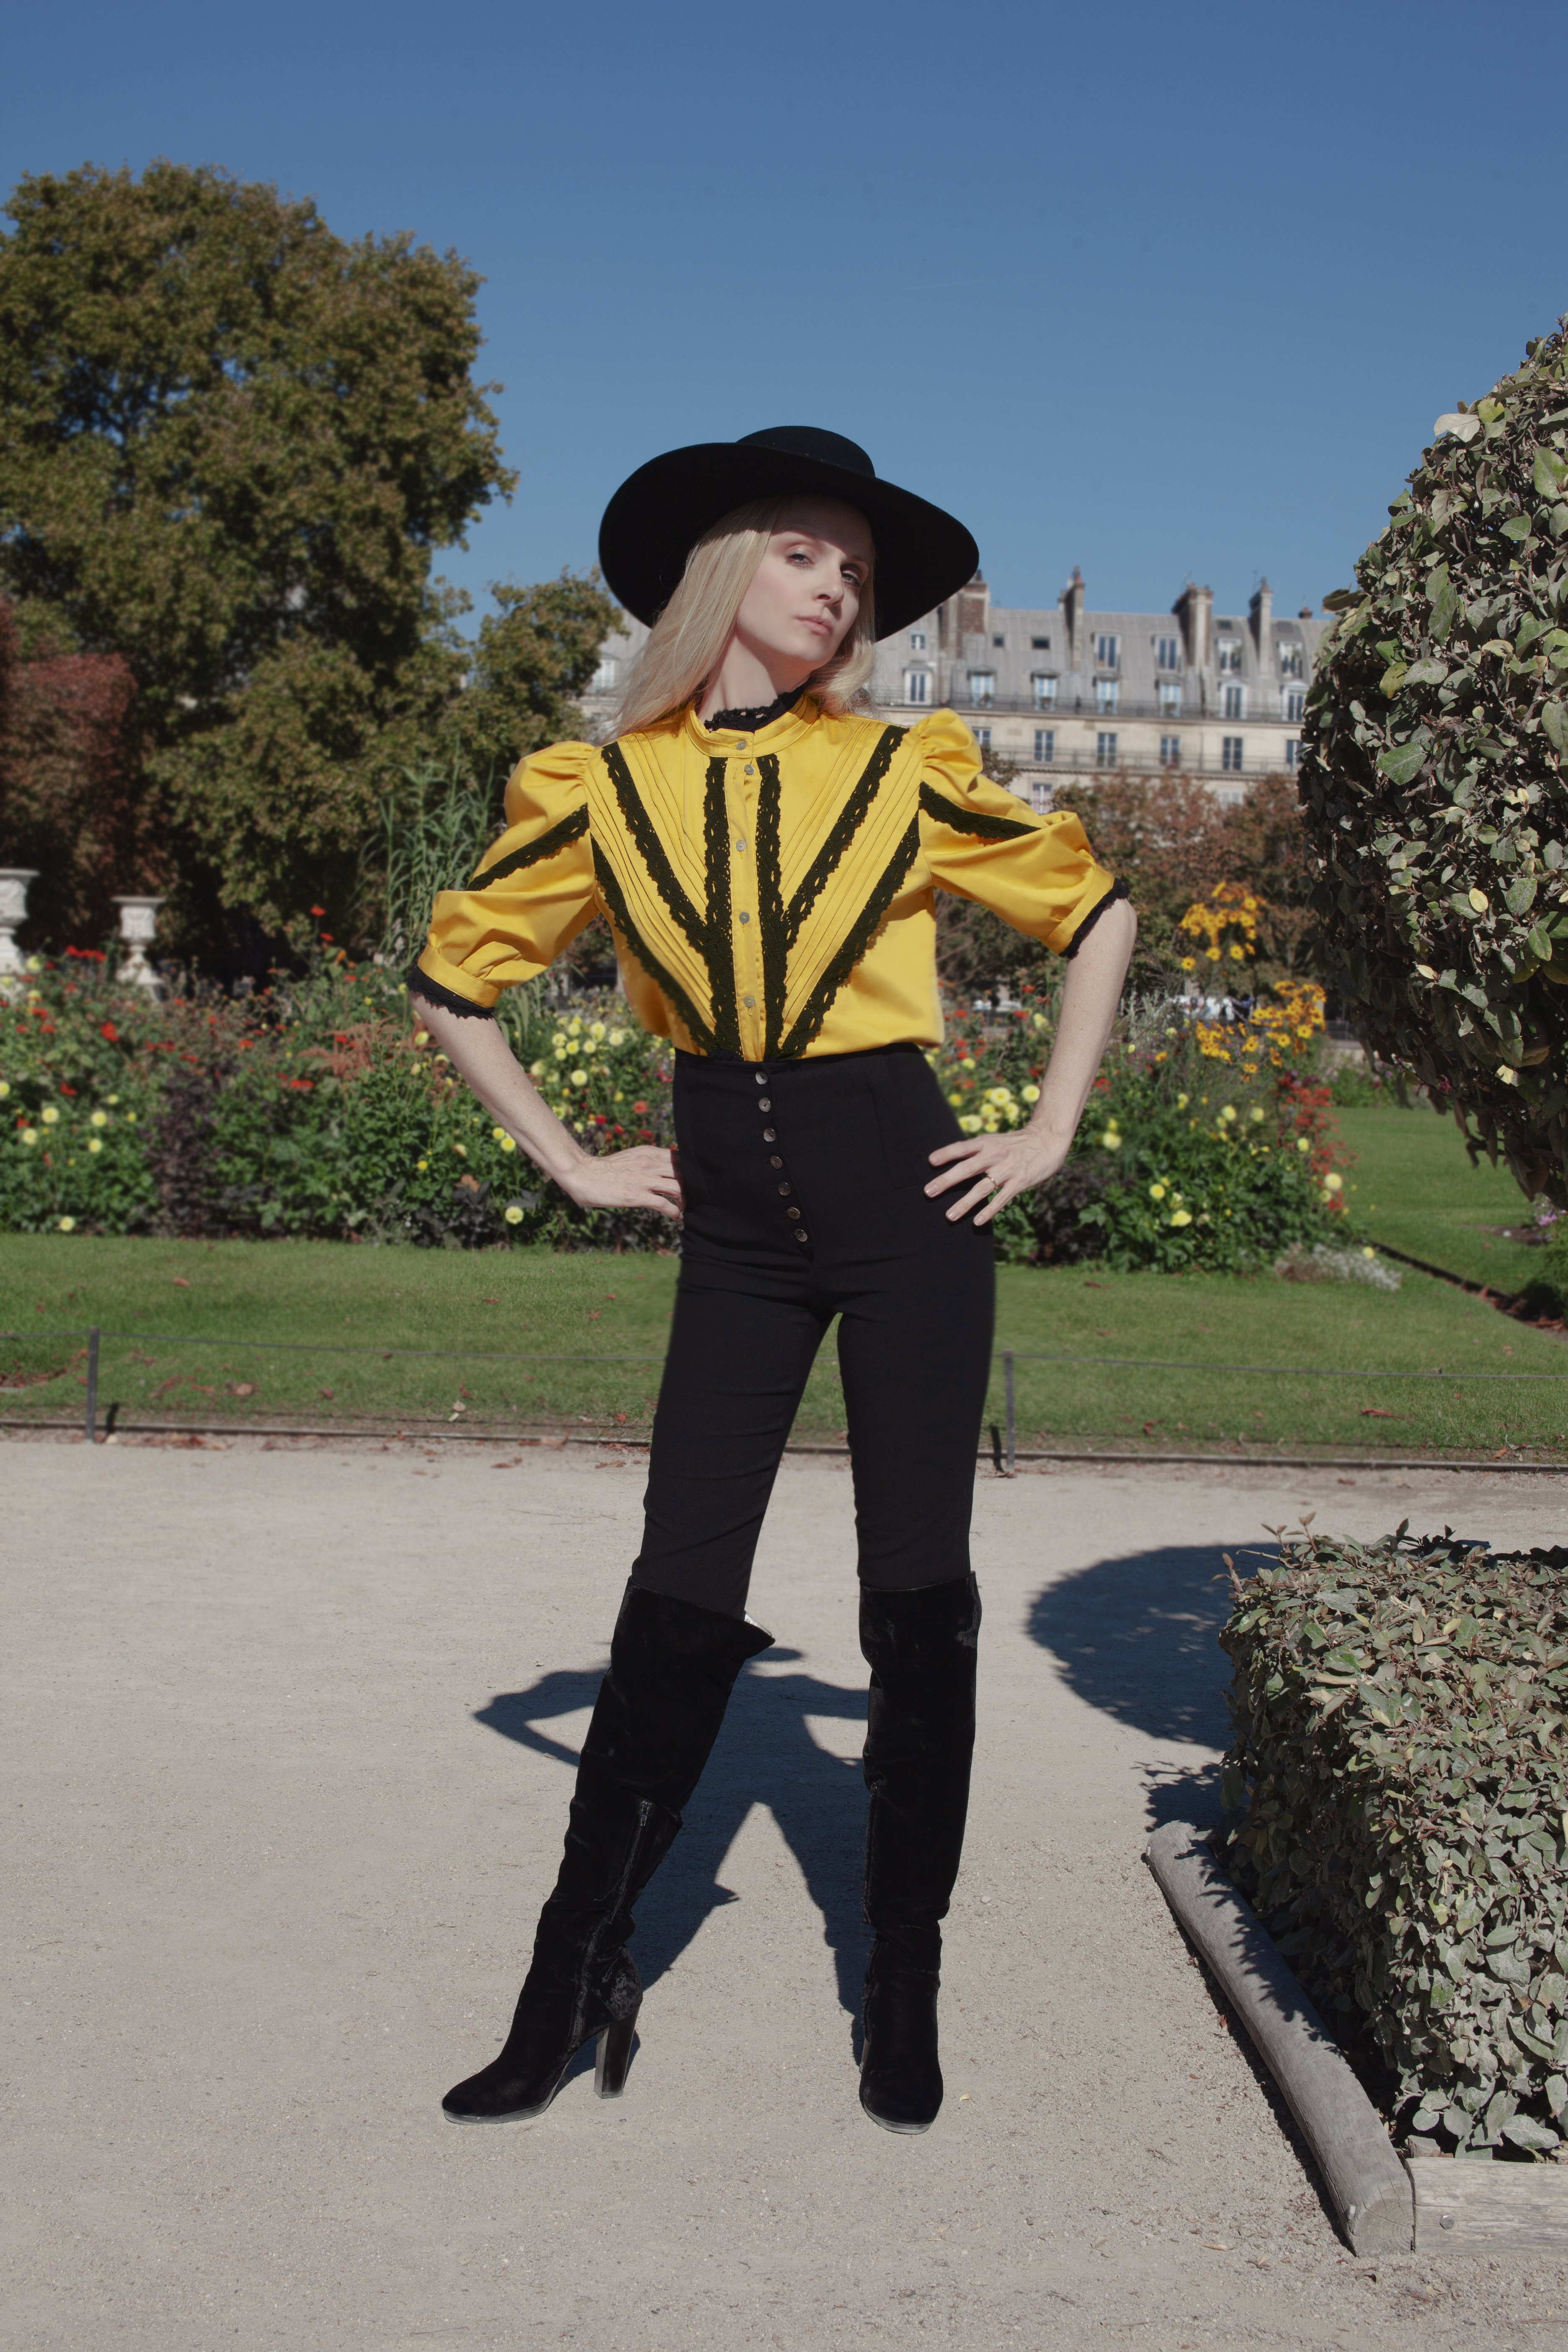 Sofia Achaval De Montaigu wearing Yegua Shirt in Yellow Cotton Satin paired with Palo pants in Black Cotton Satin and styled with the Gaucho Hat